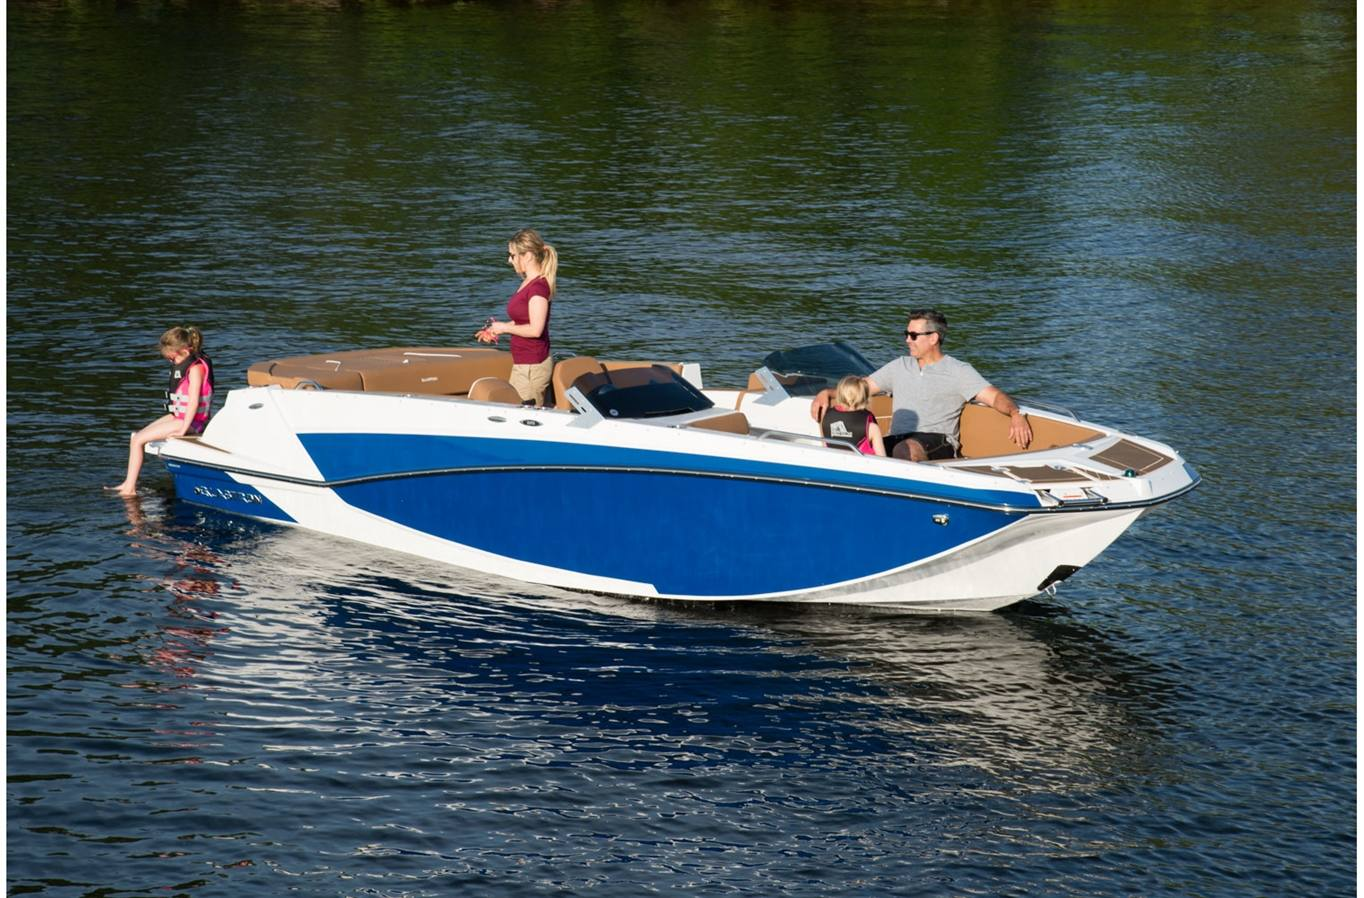 2019 Glastron GTD 225 for sale in Madera, CA  Pacific Marine